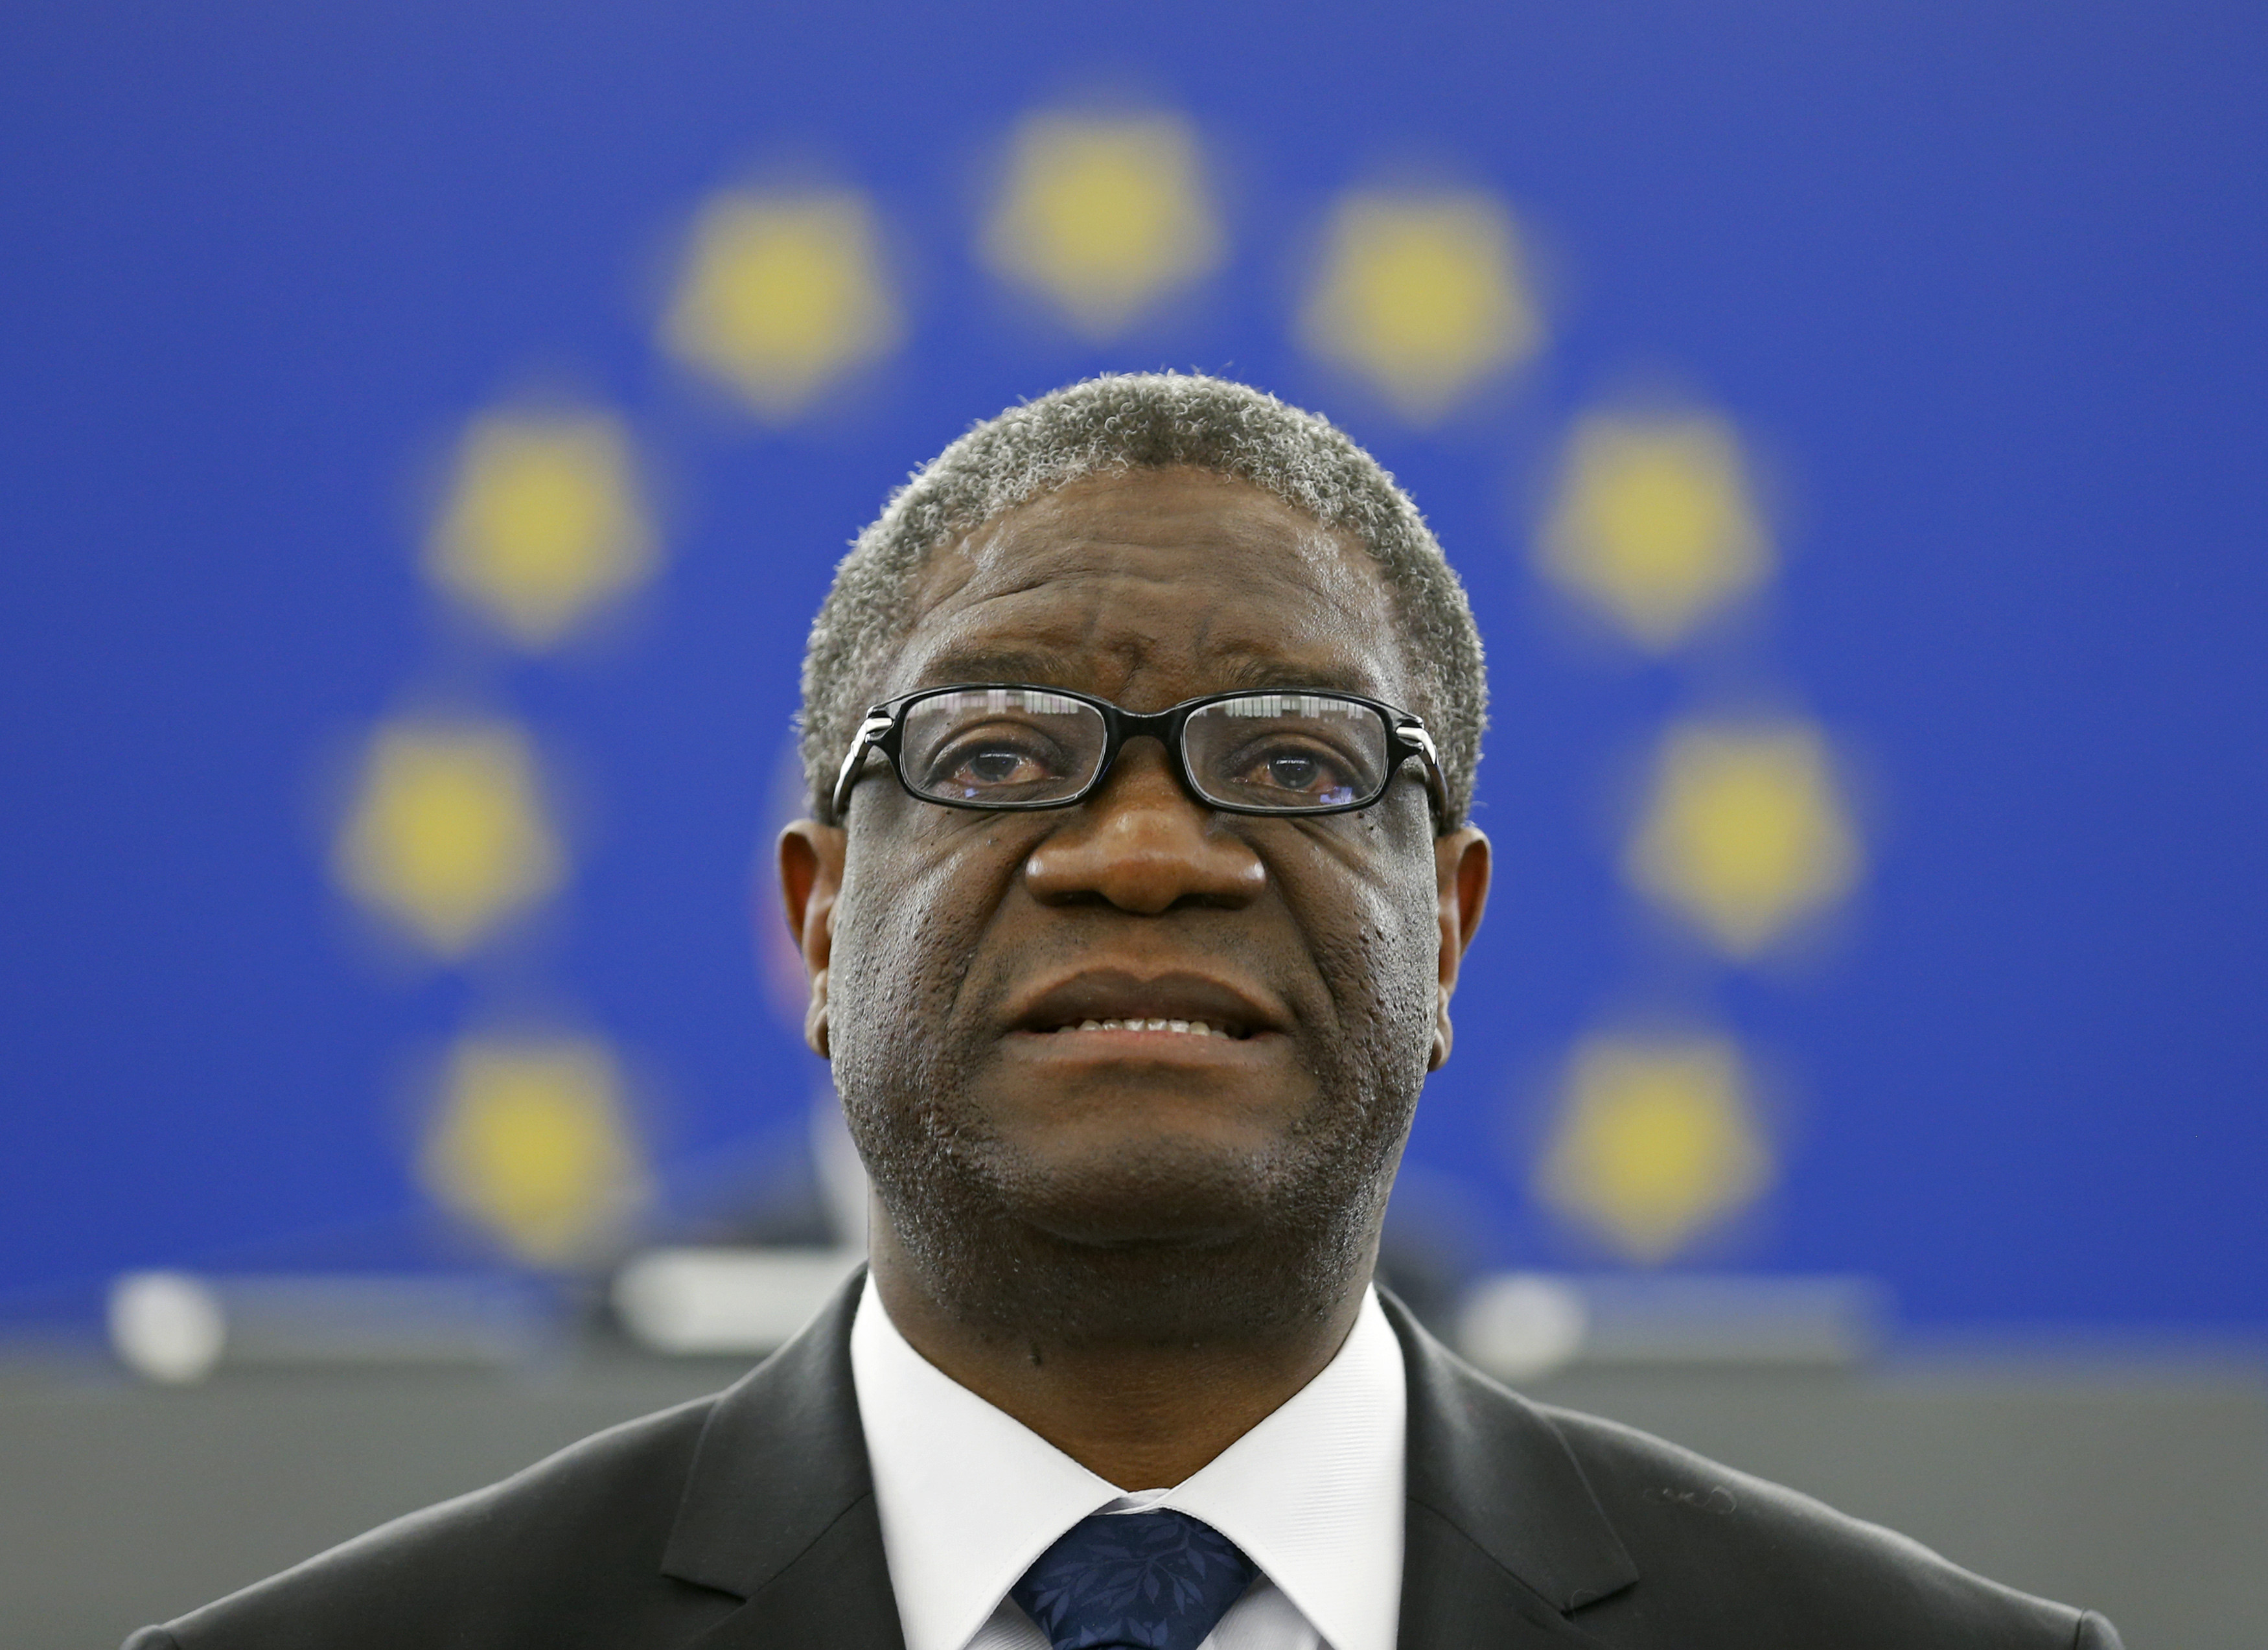 Congolese gynaecologist Denis Mukwege delivers a speech during an award ceremony to receive his 2014 Sakharov Prize at the European Parliament in Strasbourg November 26, 2014. Mukwege is specialized in the treatment of rape victims and founder of the Panzi Hospital in Bukavu, in the Democratic Republic Congo.